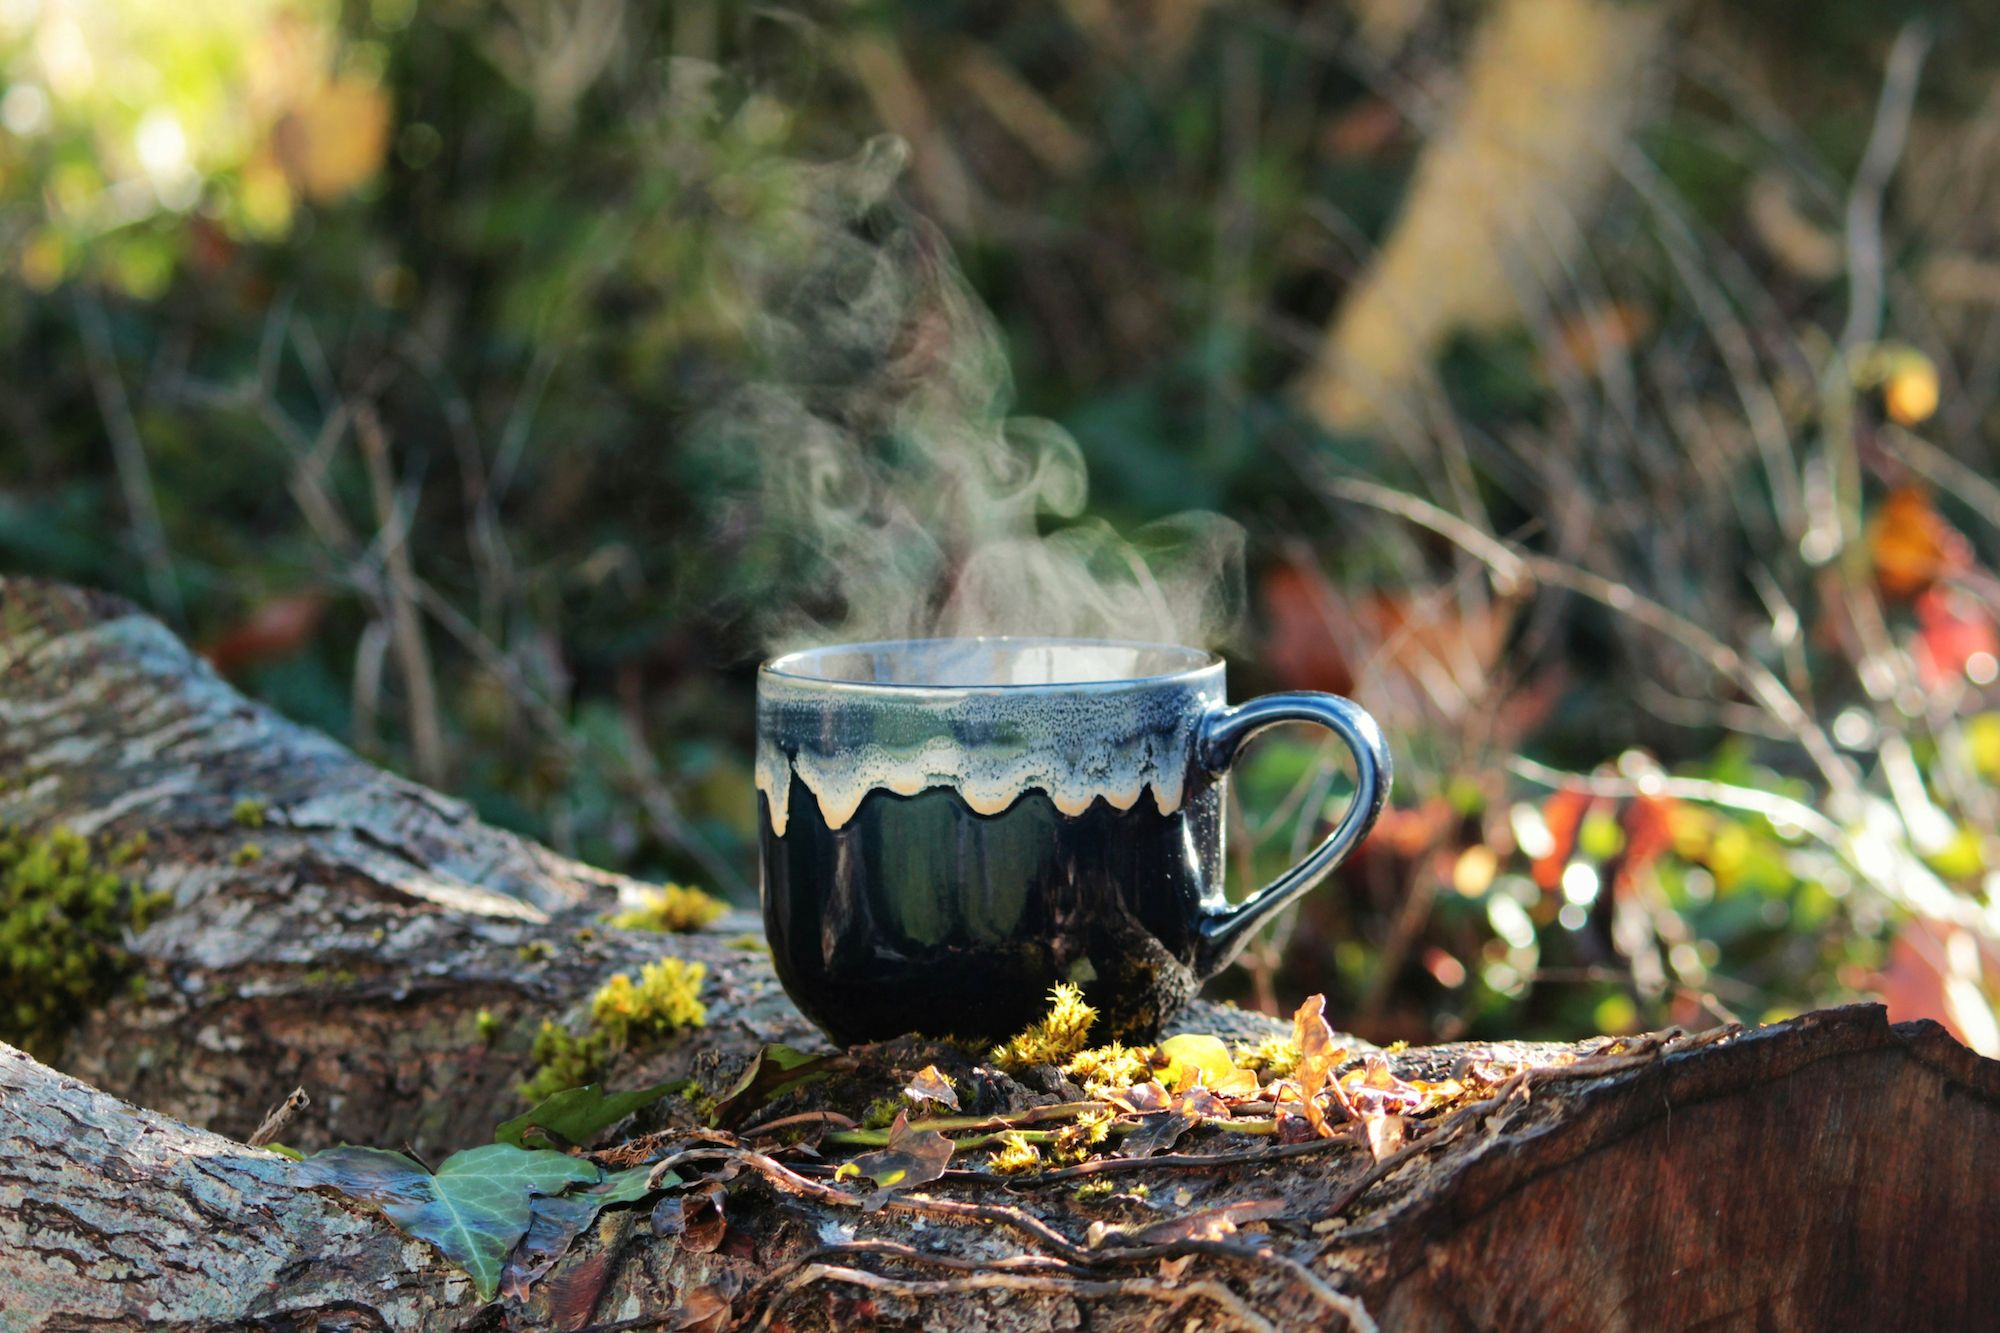 steaming mug of coffee rested on log in forest